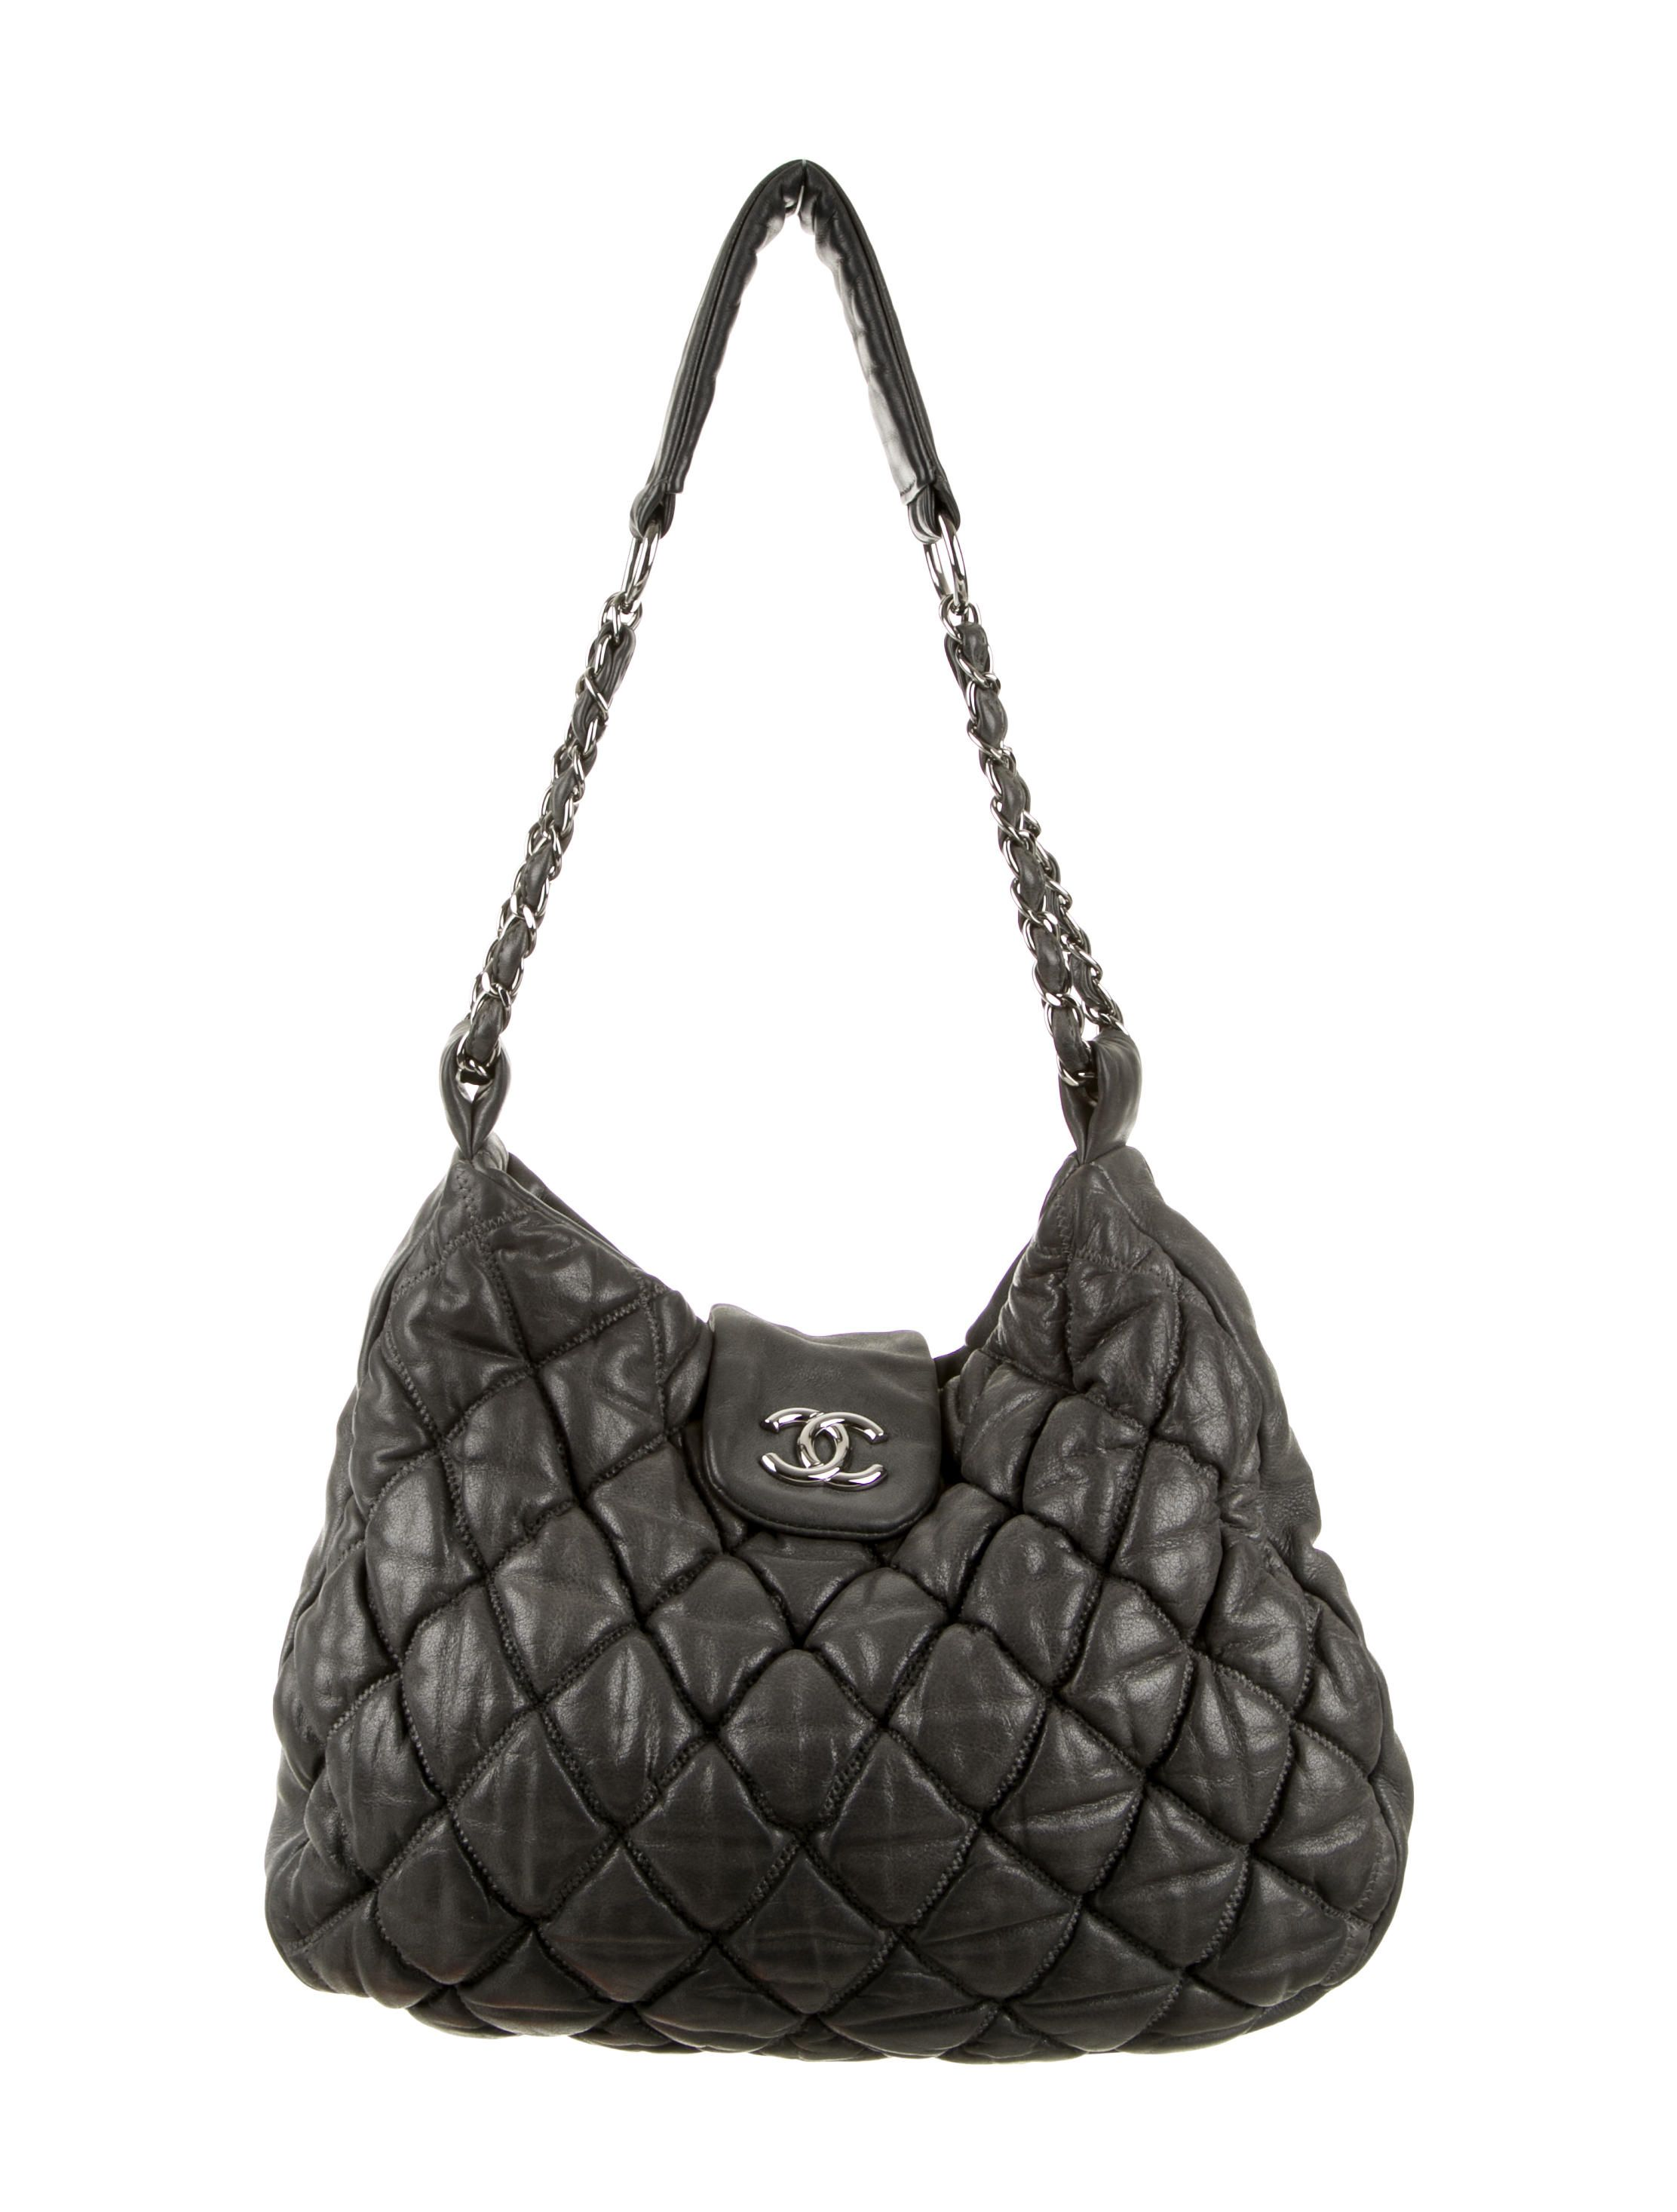 625a74ec0abe Charcoal bubble quilt leather Chanel Large Hobo with silver-tone hardware,  chain-link